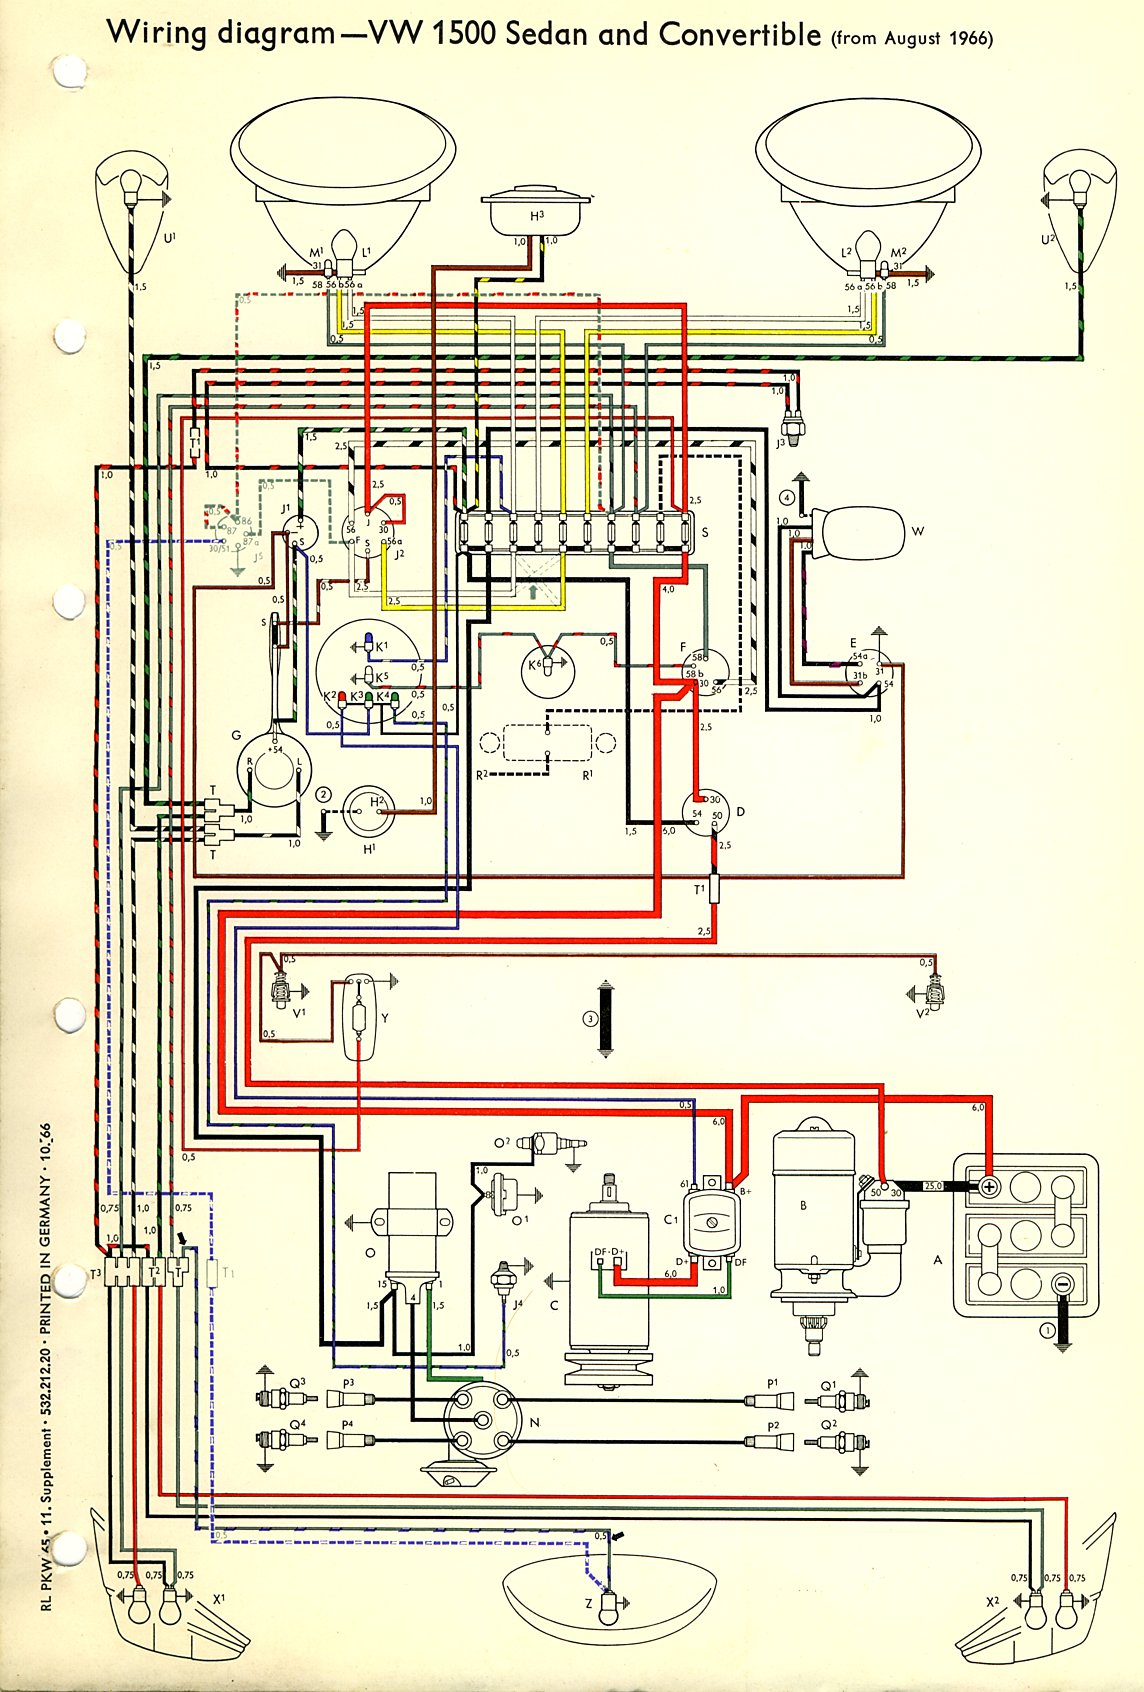 thesamba com type 1 wiring diagrams rh thesamba com 1971 Super Beetle Wiring Diagram 74 Super Beetle Wiring Diagram